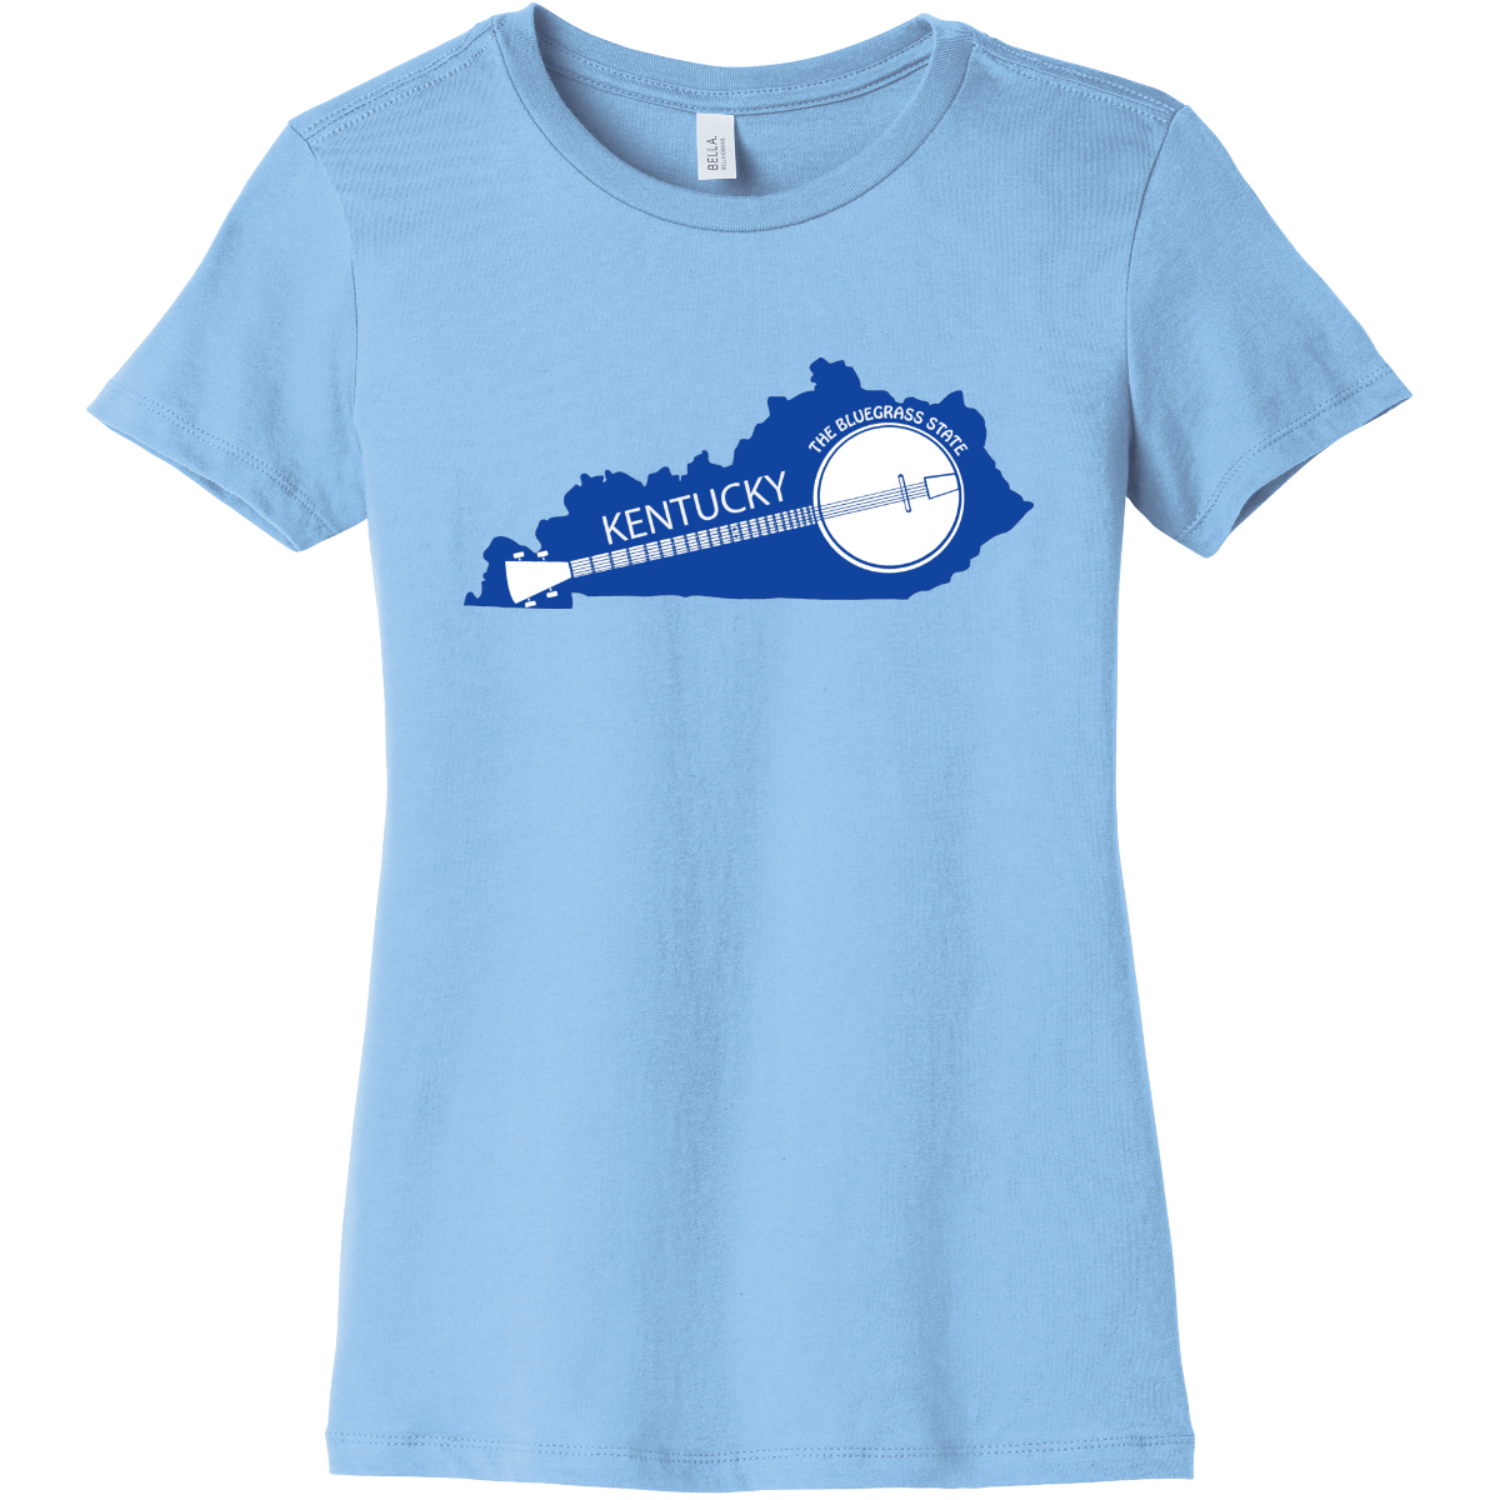 Kentucky State Shaped Banjo Women's T Shirt Baby Blue Bella Canvas 6004 Ladies The Favorite Tee